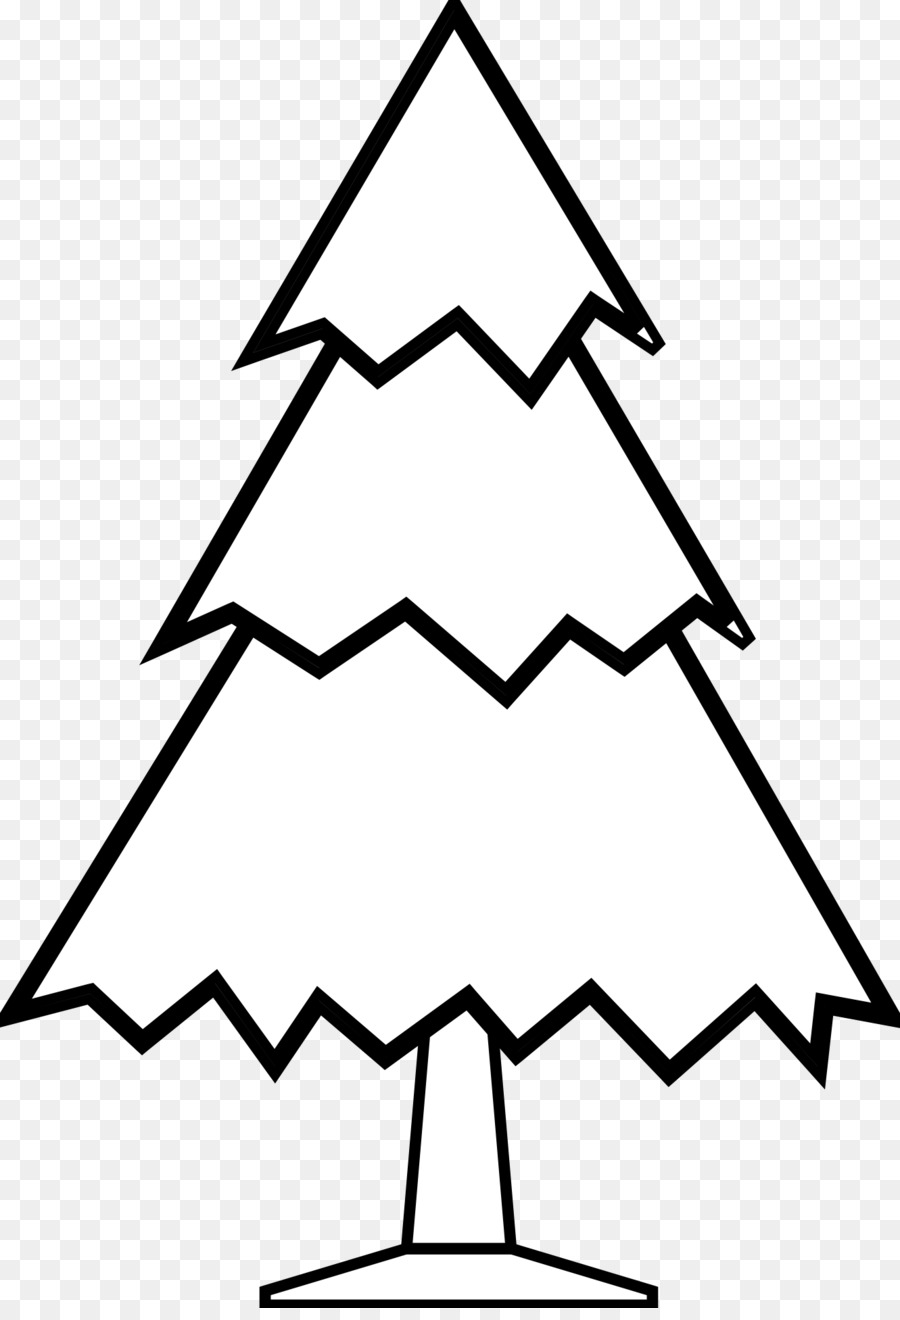 Christmas Tree Pine Black And White Clip Art